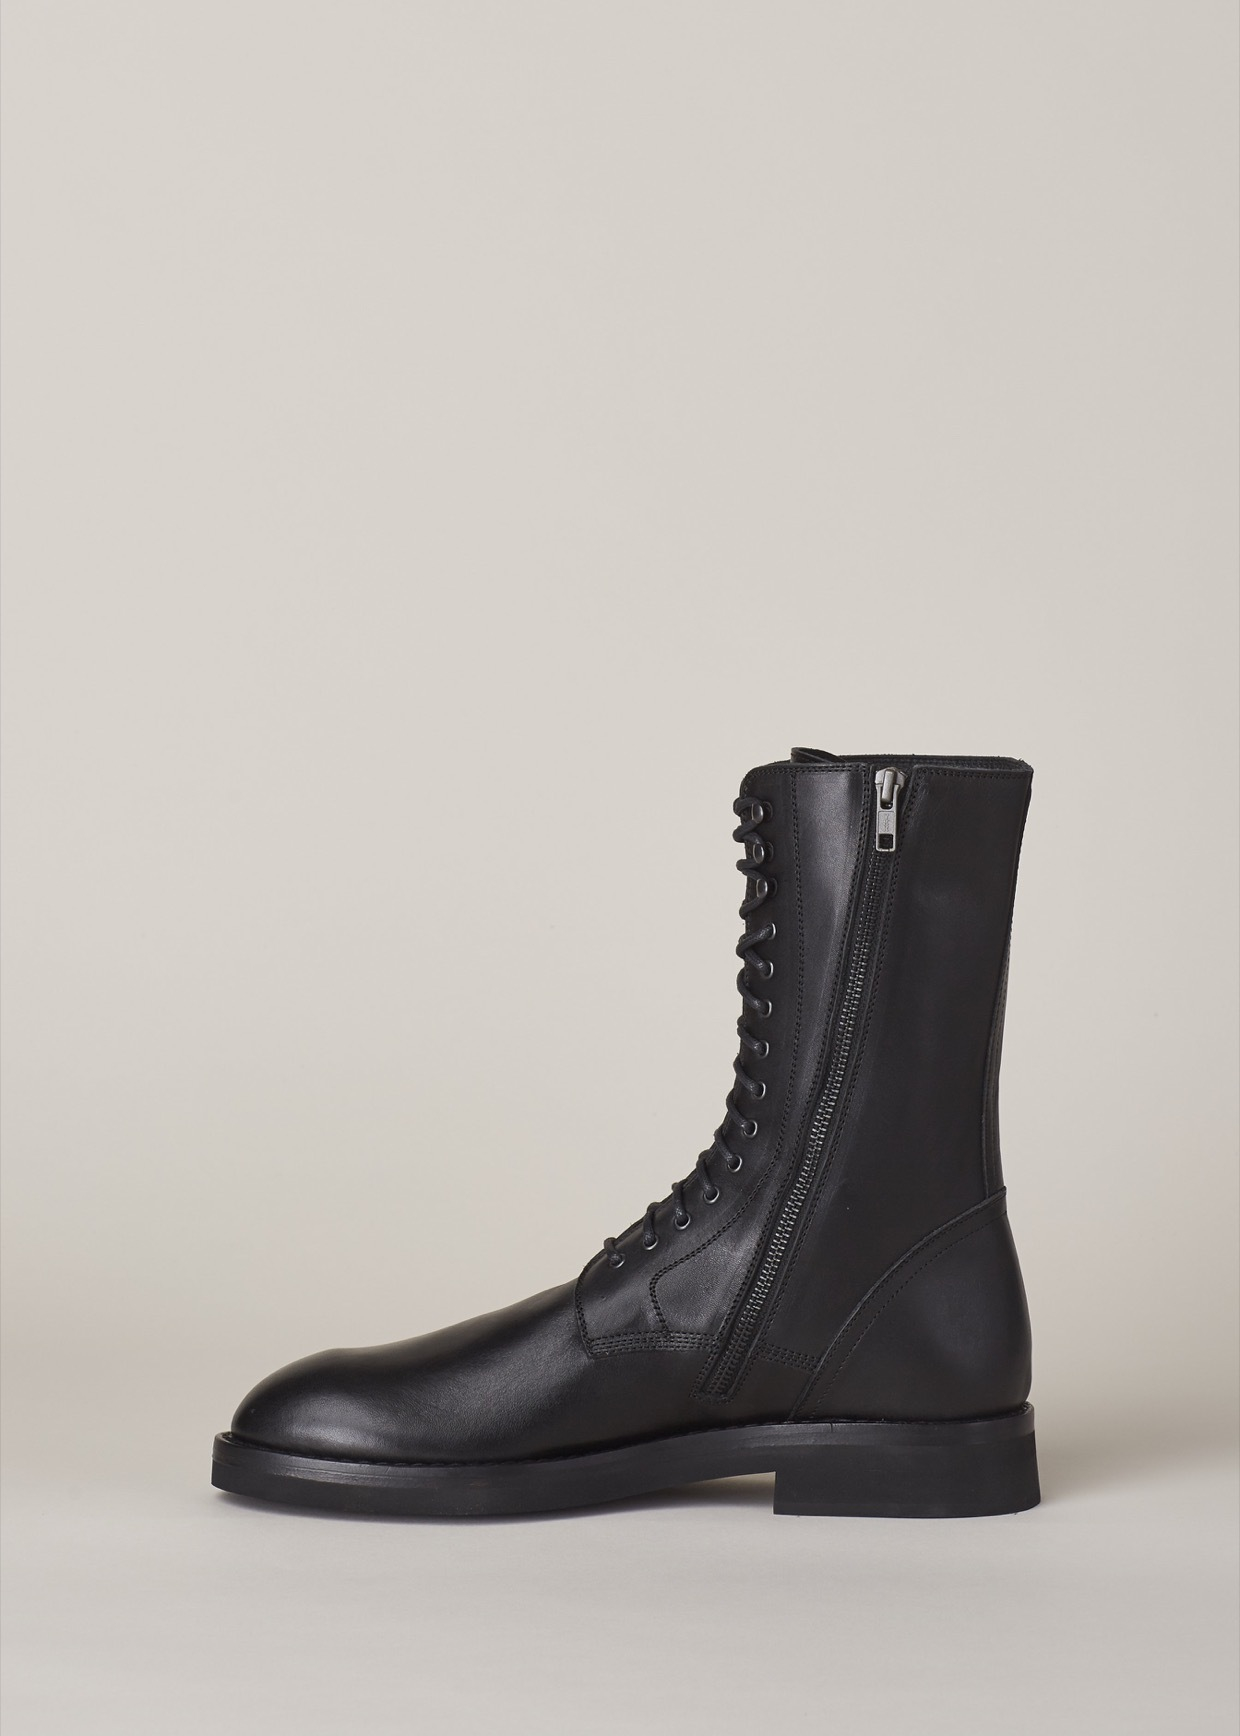 Ann Demeulemeester leather lace up shoes for sale online B84Je0